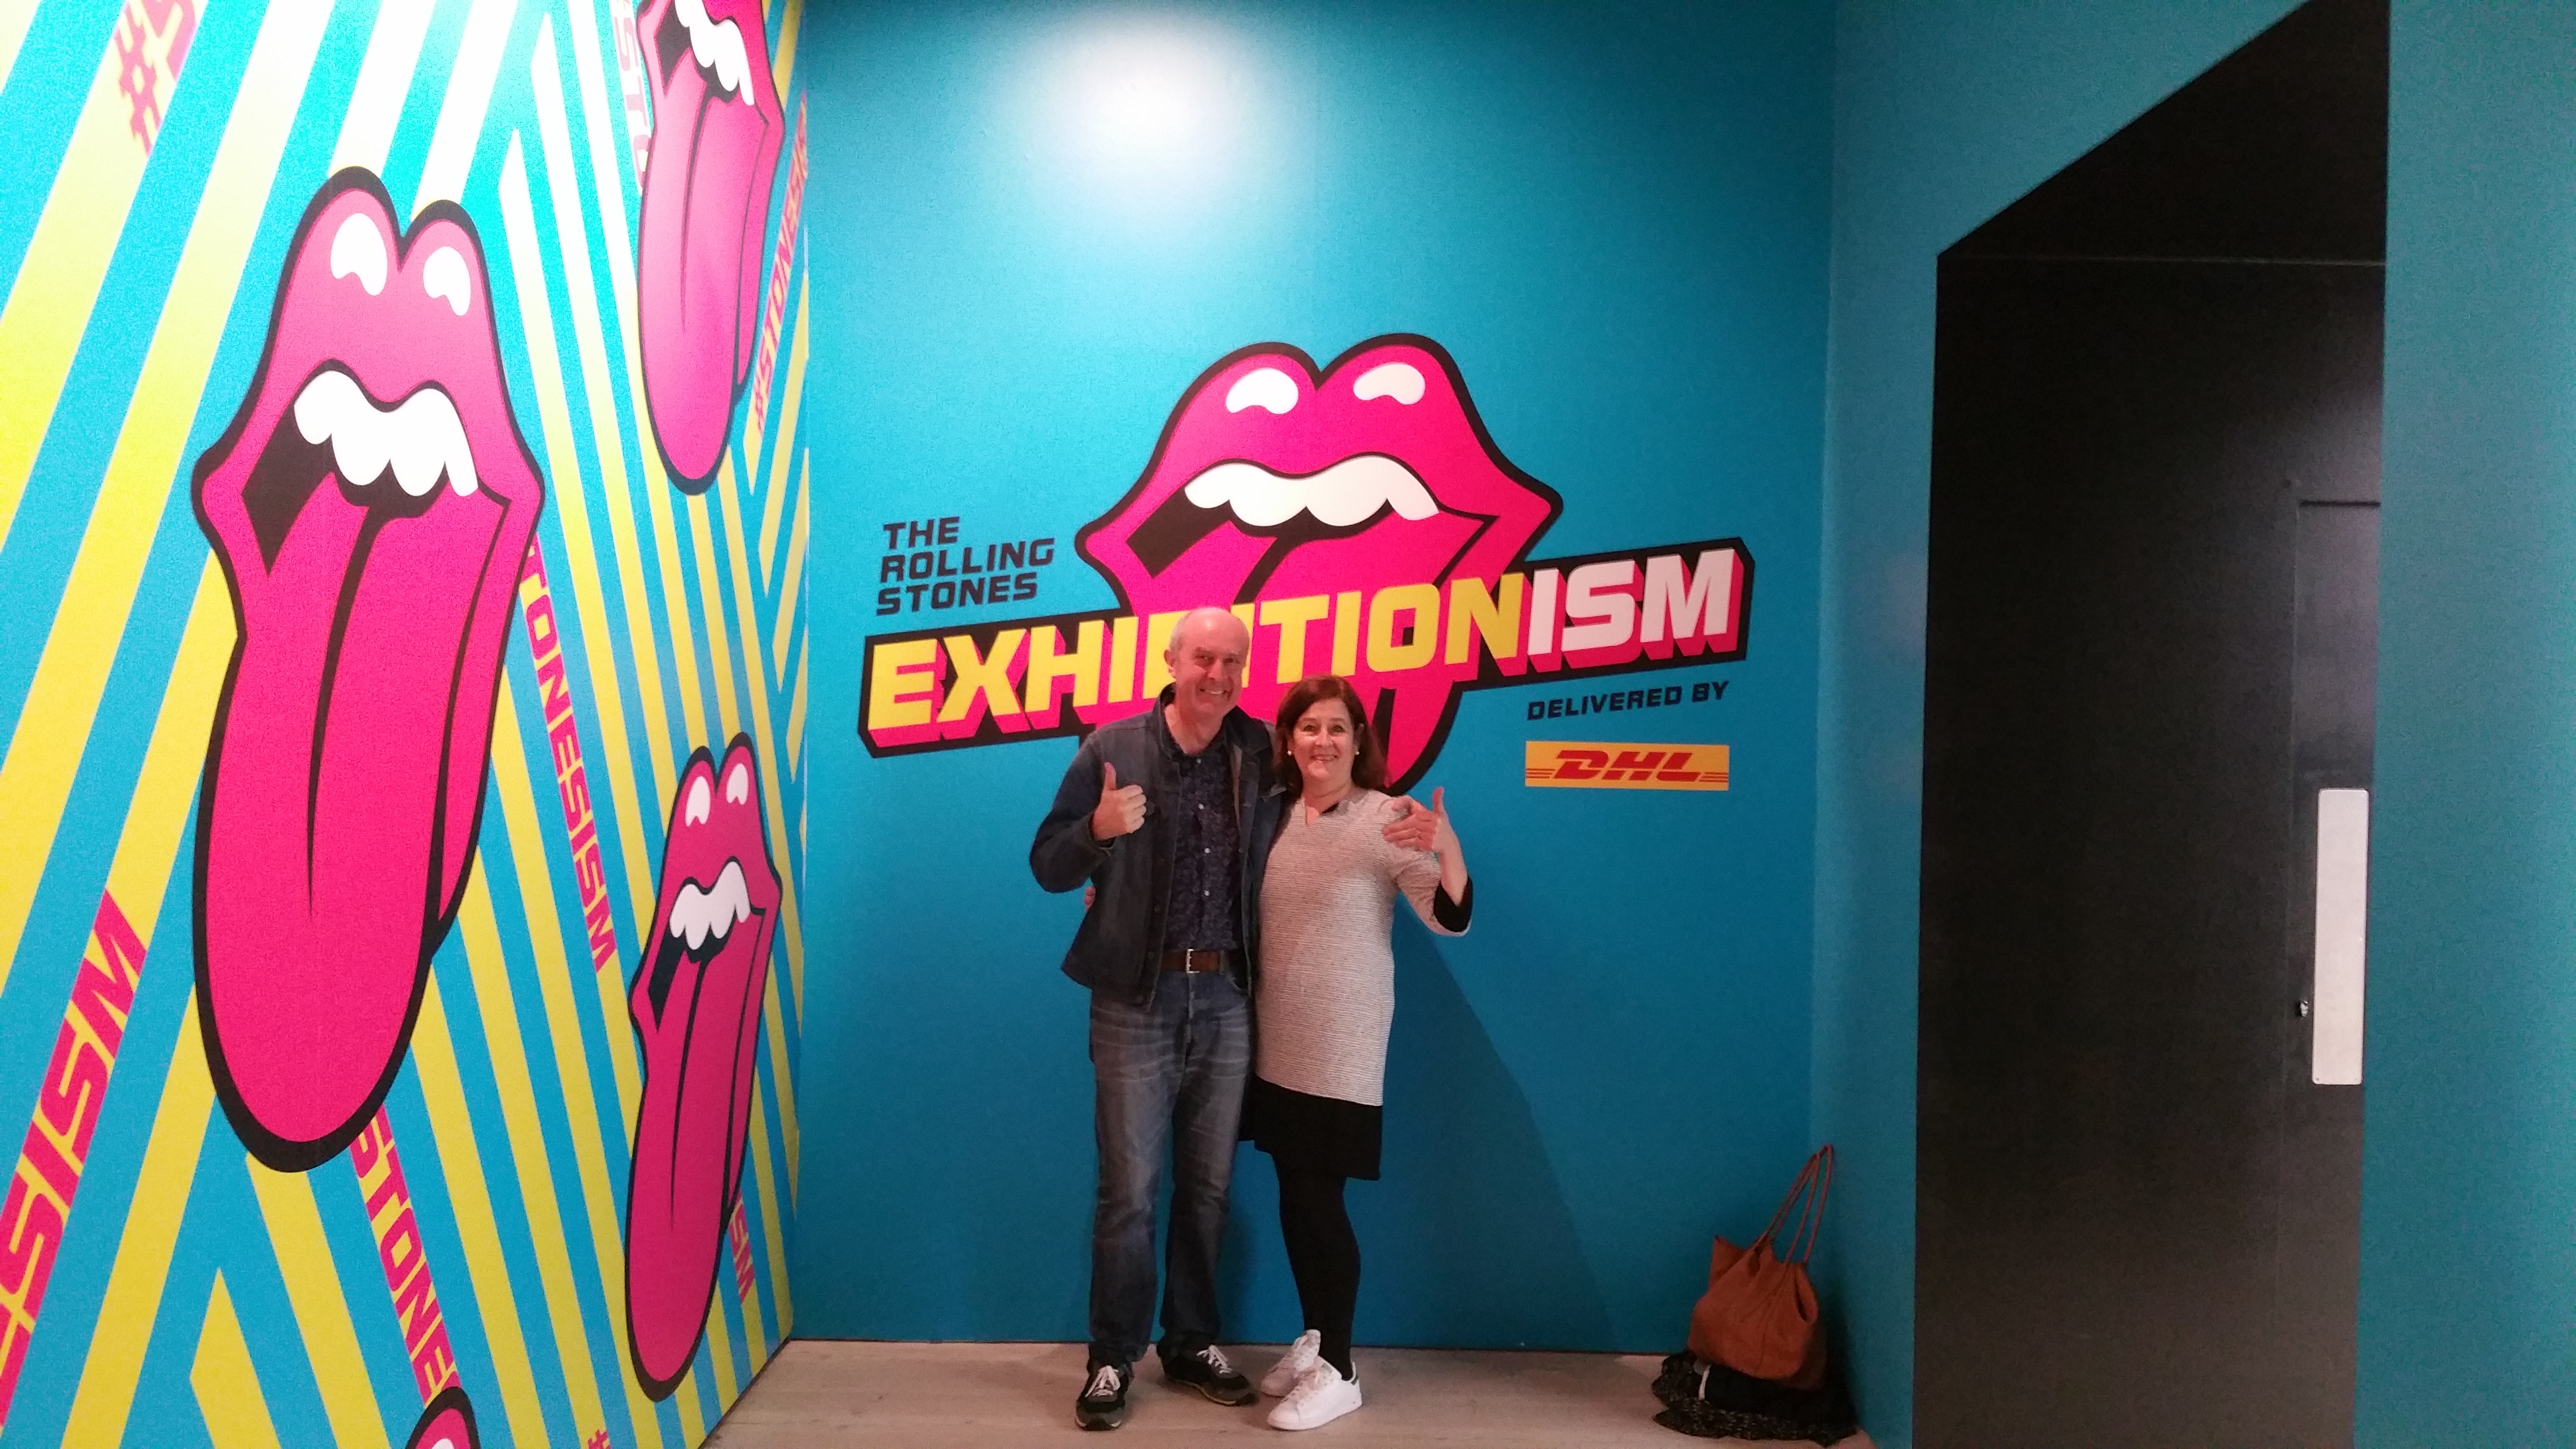 Rolling Stones Exhibitionism in London